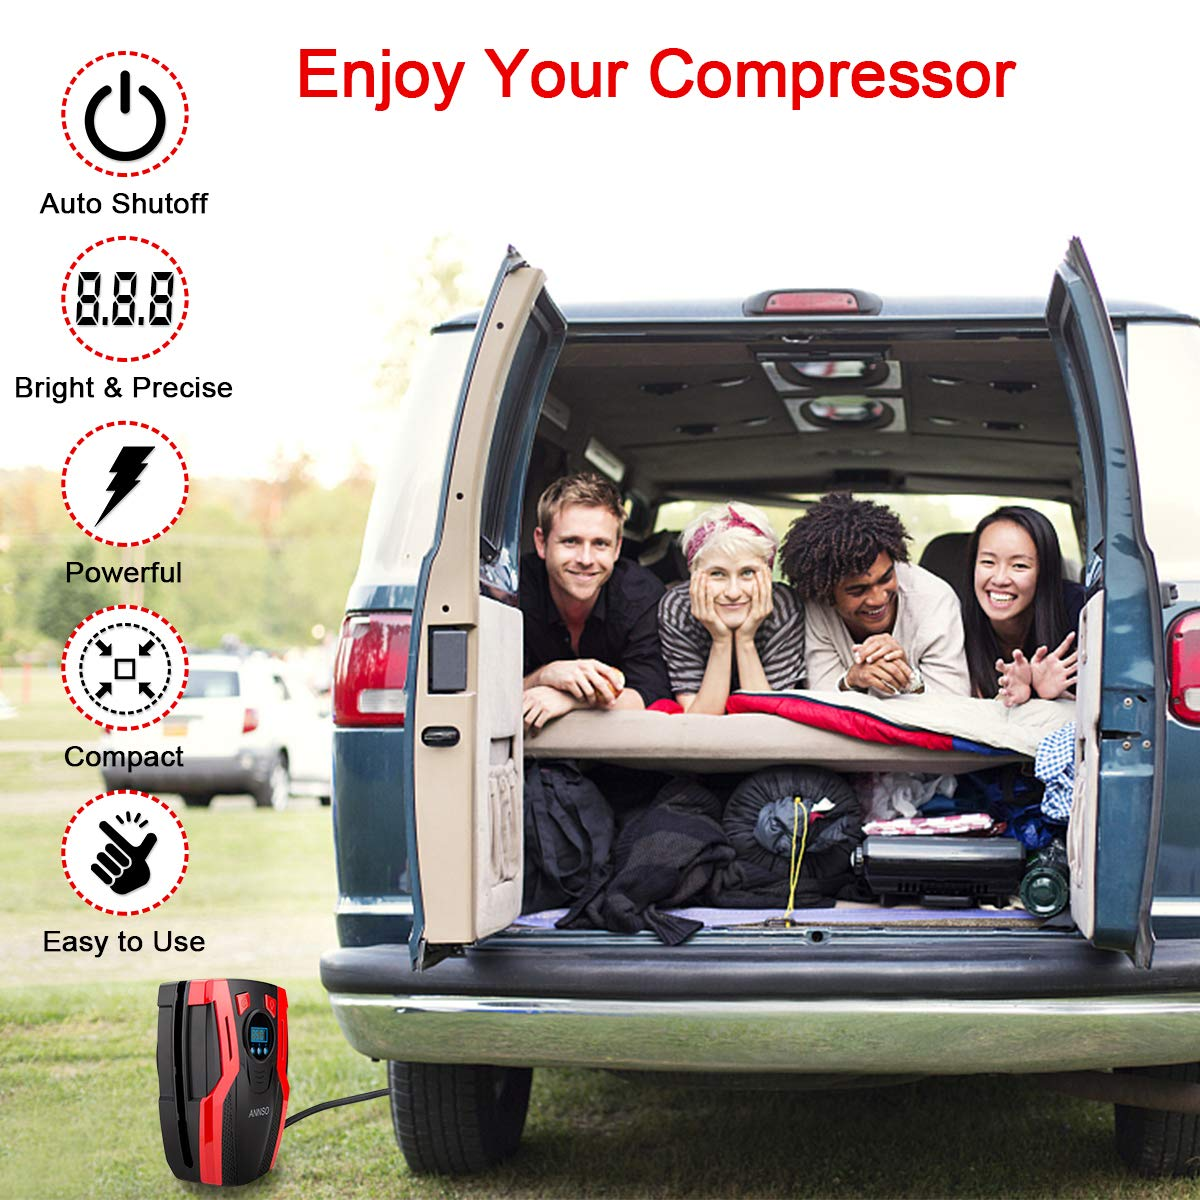 ANNSO Air Compressor Tire Inflator,Car Tire Pump Air Pump for Car Tires, 12v Digital Car Tire Inflator with Gauge LED Light,150 PSI Portable Air Compressor for Car Tires Other Inflatables by ANNSO (Image #2)